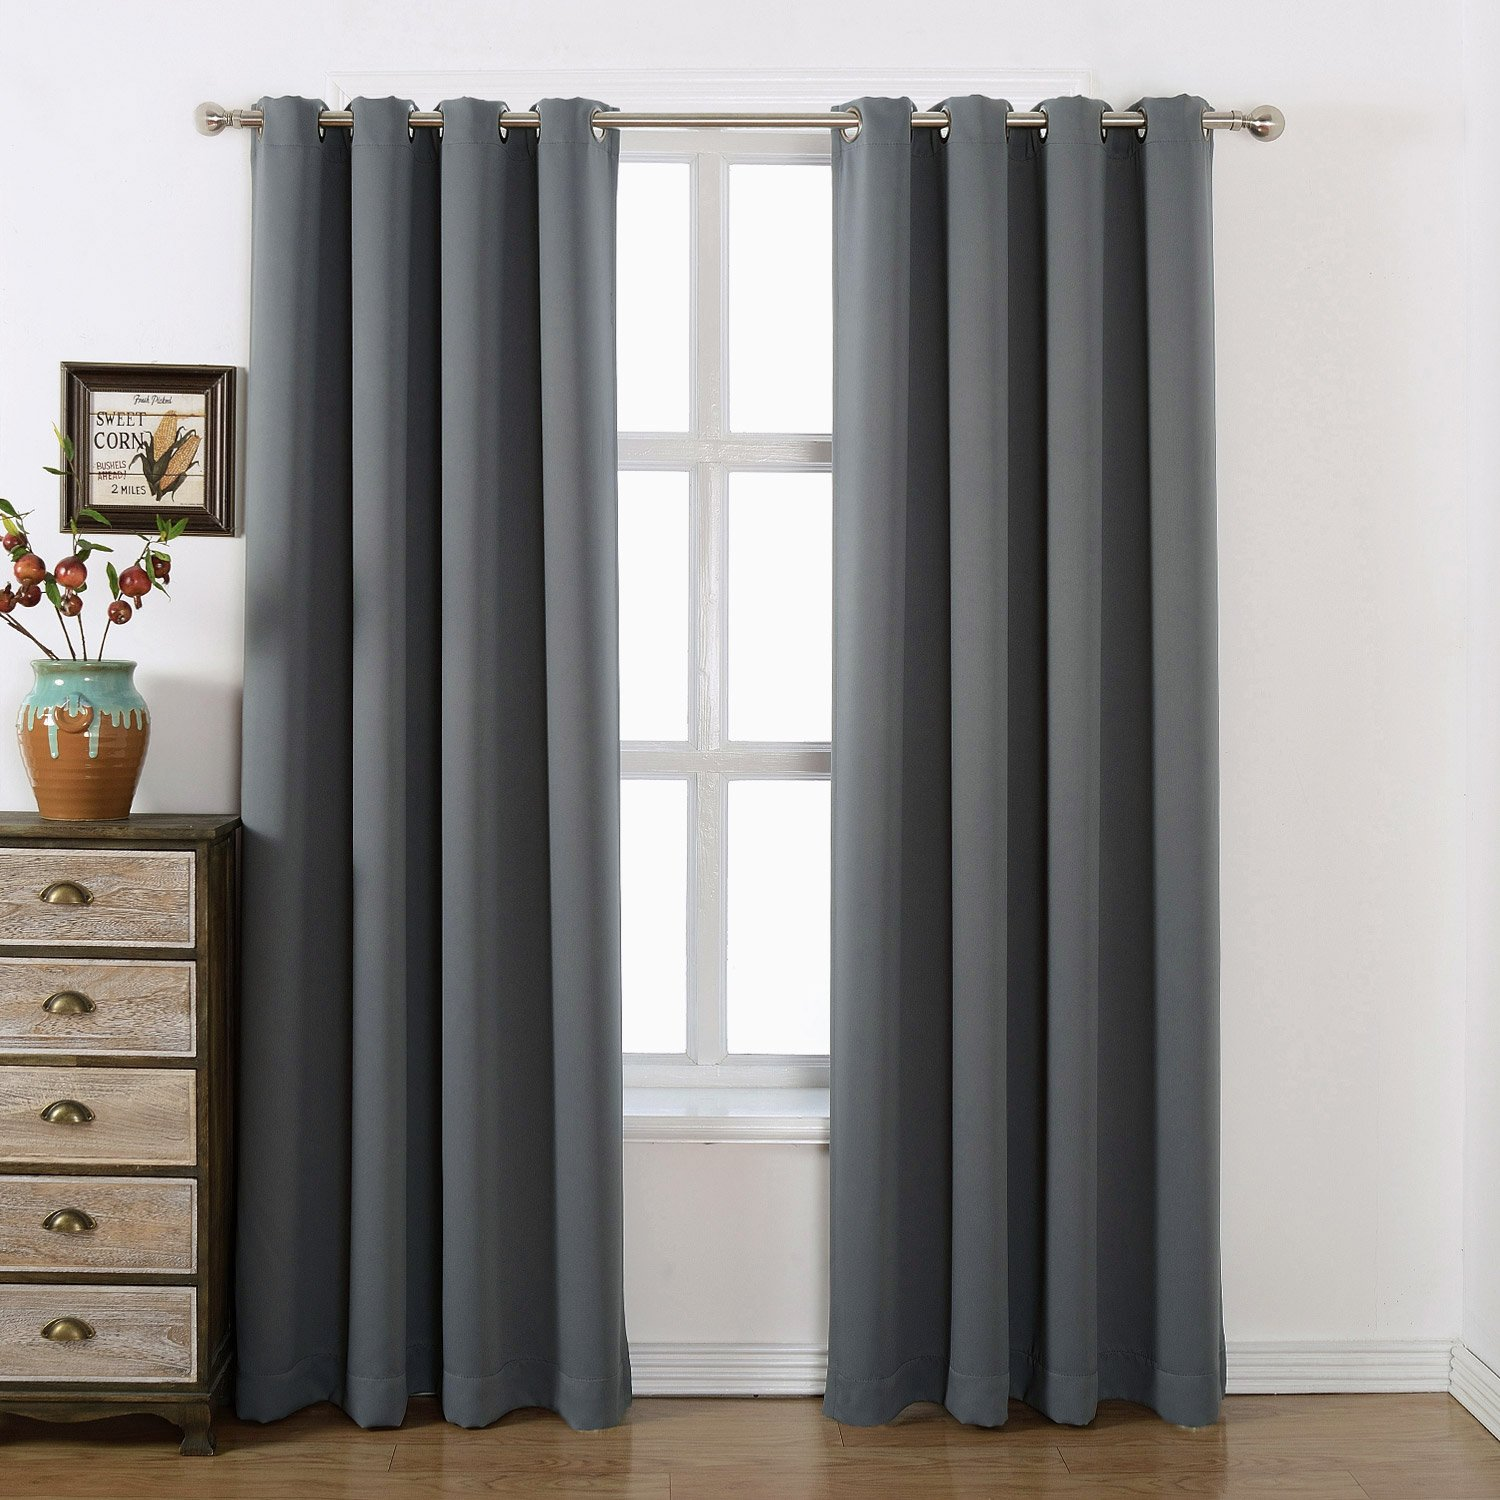 Blackout curtains for bedroom - Amazlinen 52x84 Inch Grommet Top Blackout Curtains With Tie Back Charcoal Grey Set Of 2